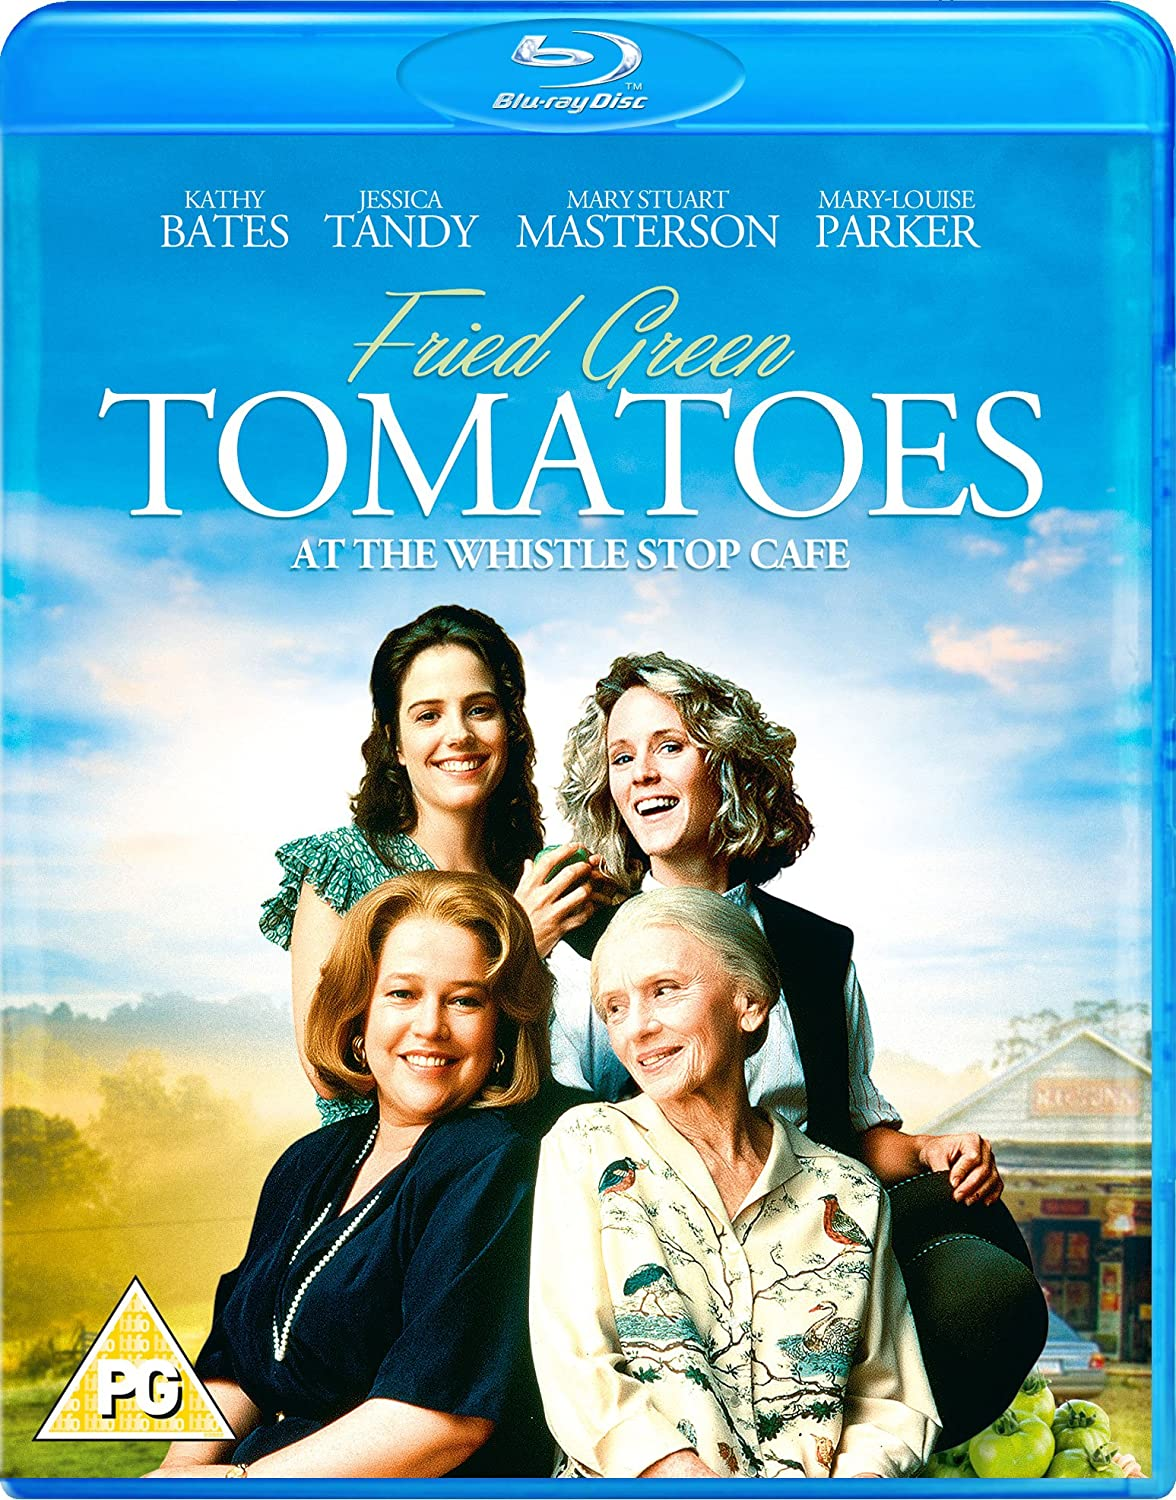 Download Fried Green Tomatoes 1991 1080p BluRay x264 anoXmous Torrent